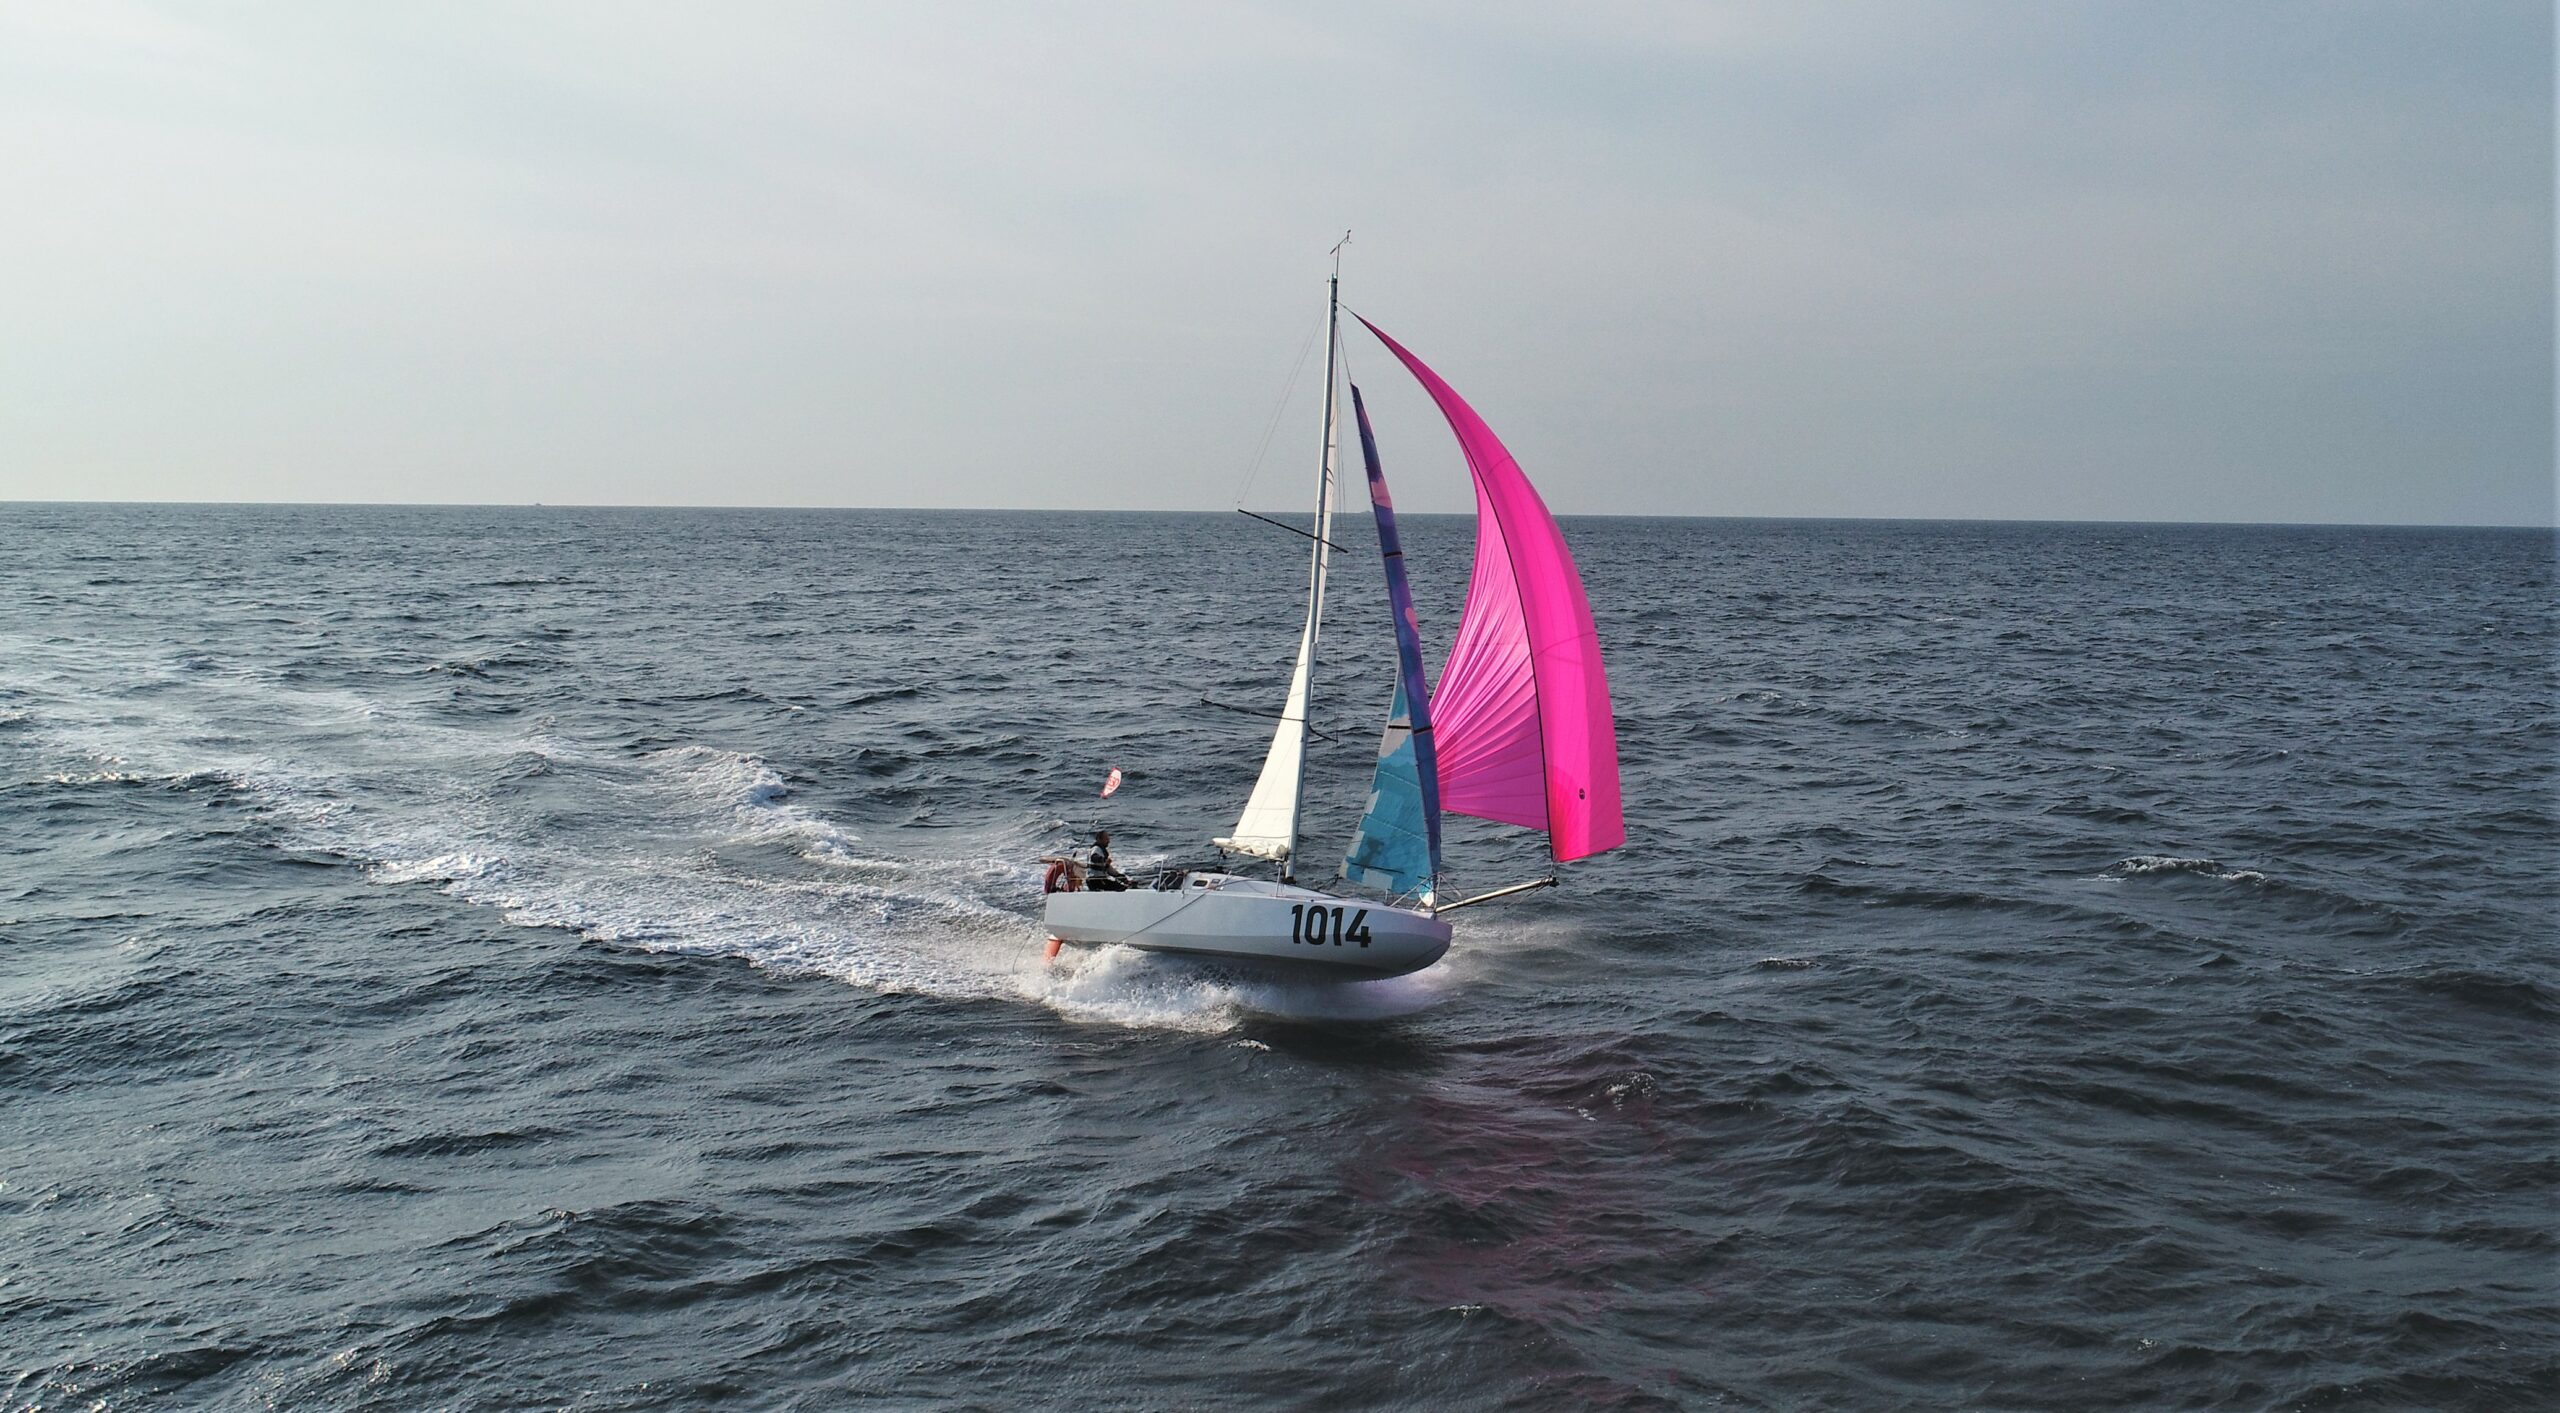 The Sailing Frenchman